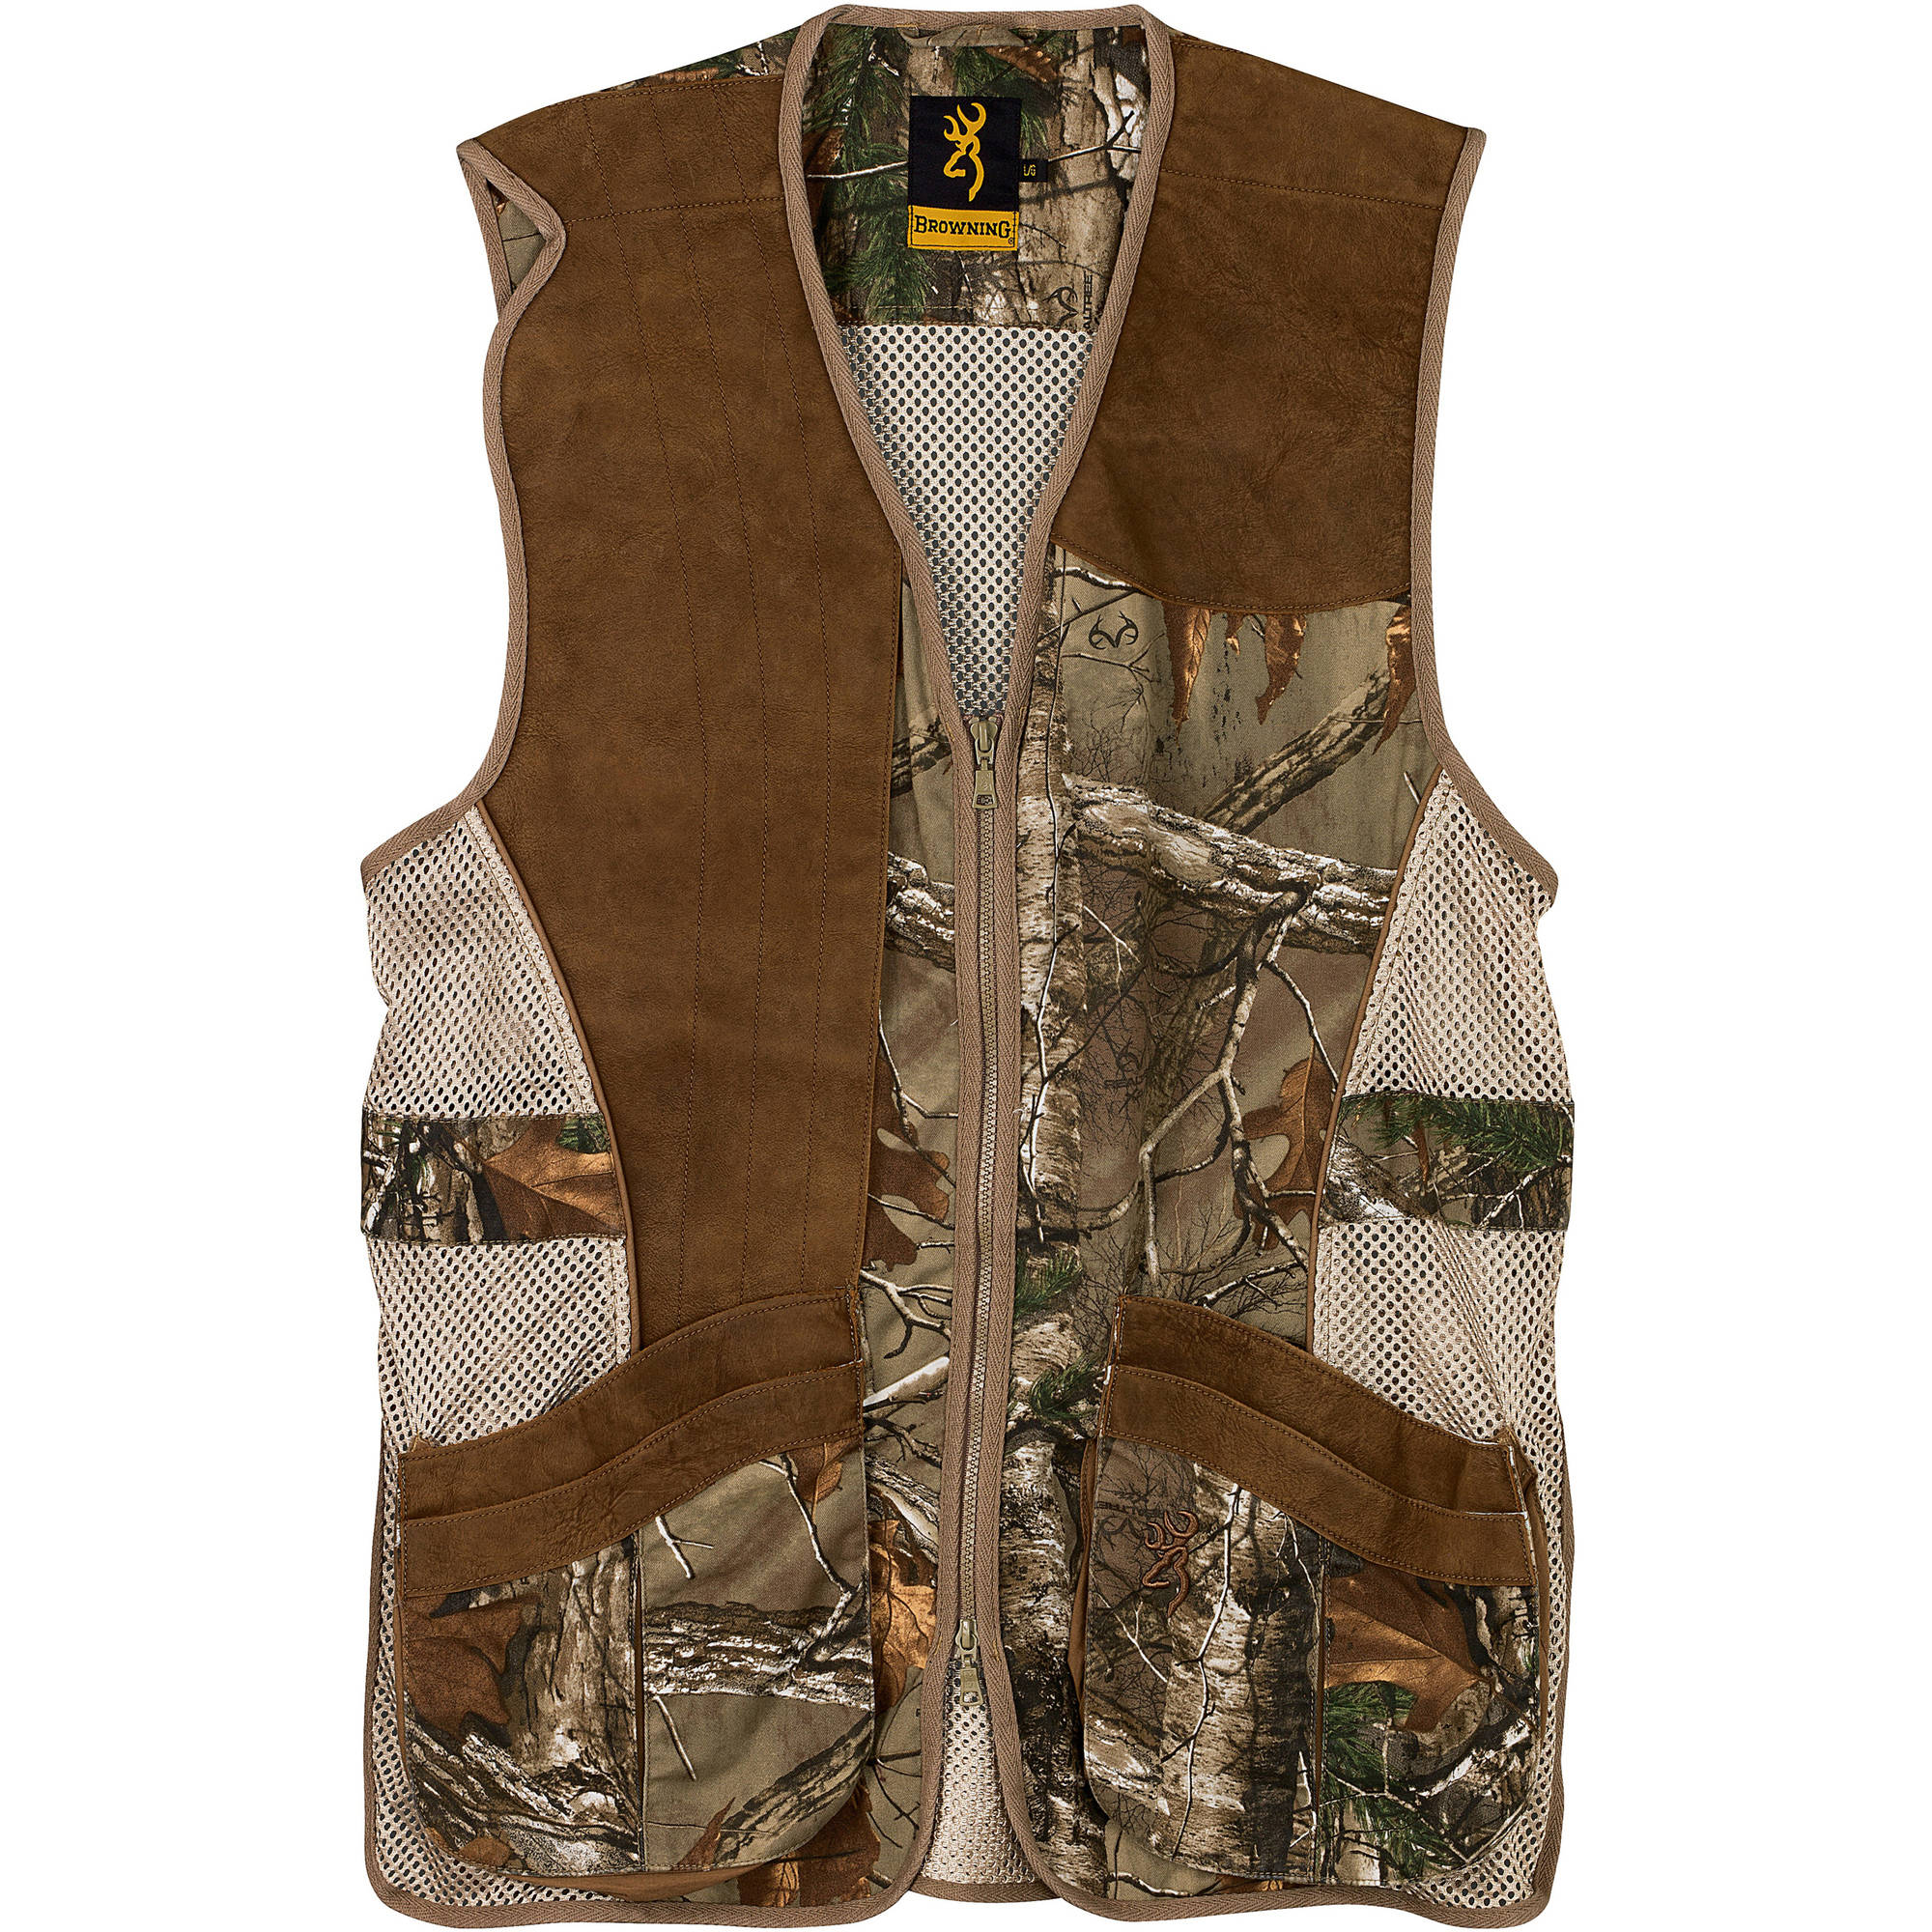 Browning Vest Crossover Realtree Xtra/Leather Xl 3050322404